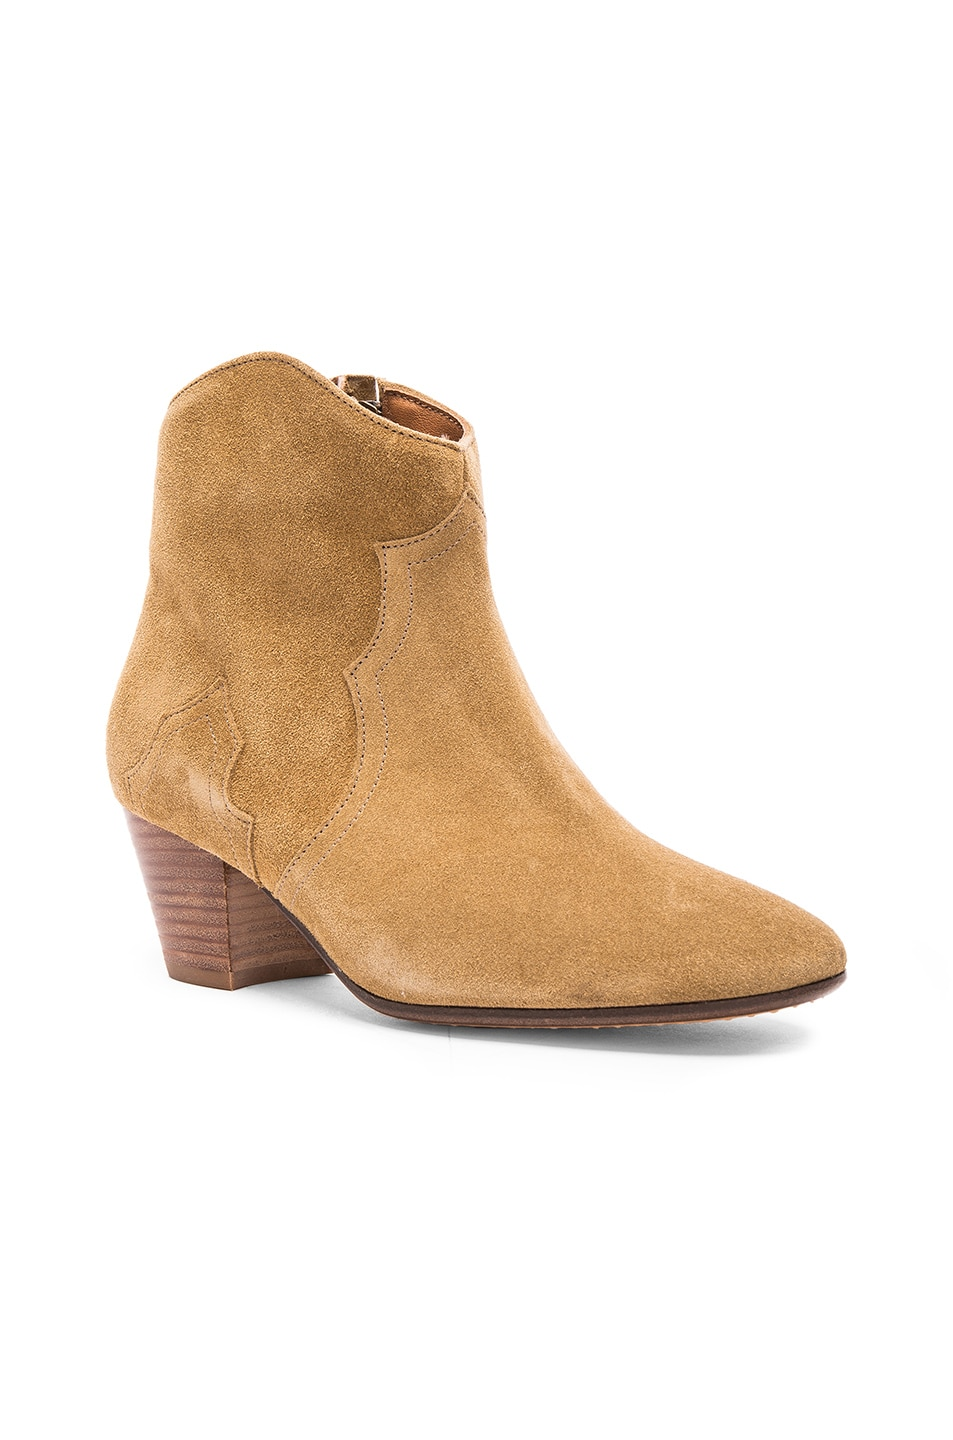 Image 2 of Isabel Marant Dicker Velvet Booties in Camel